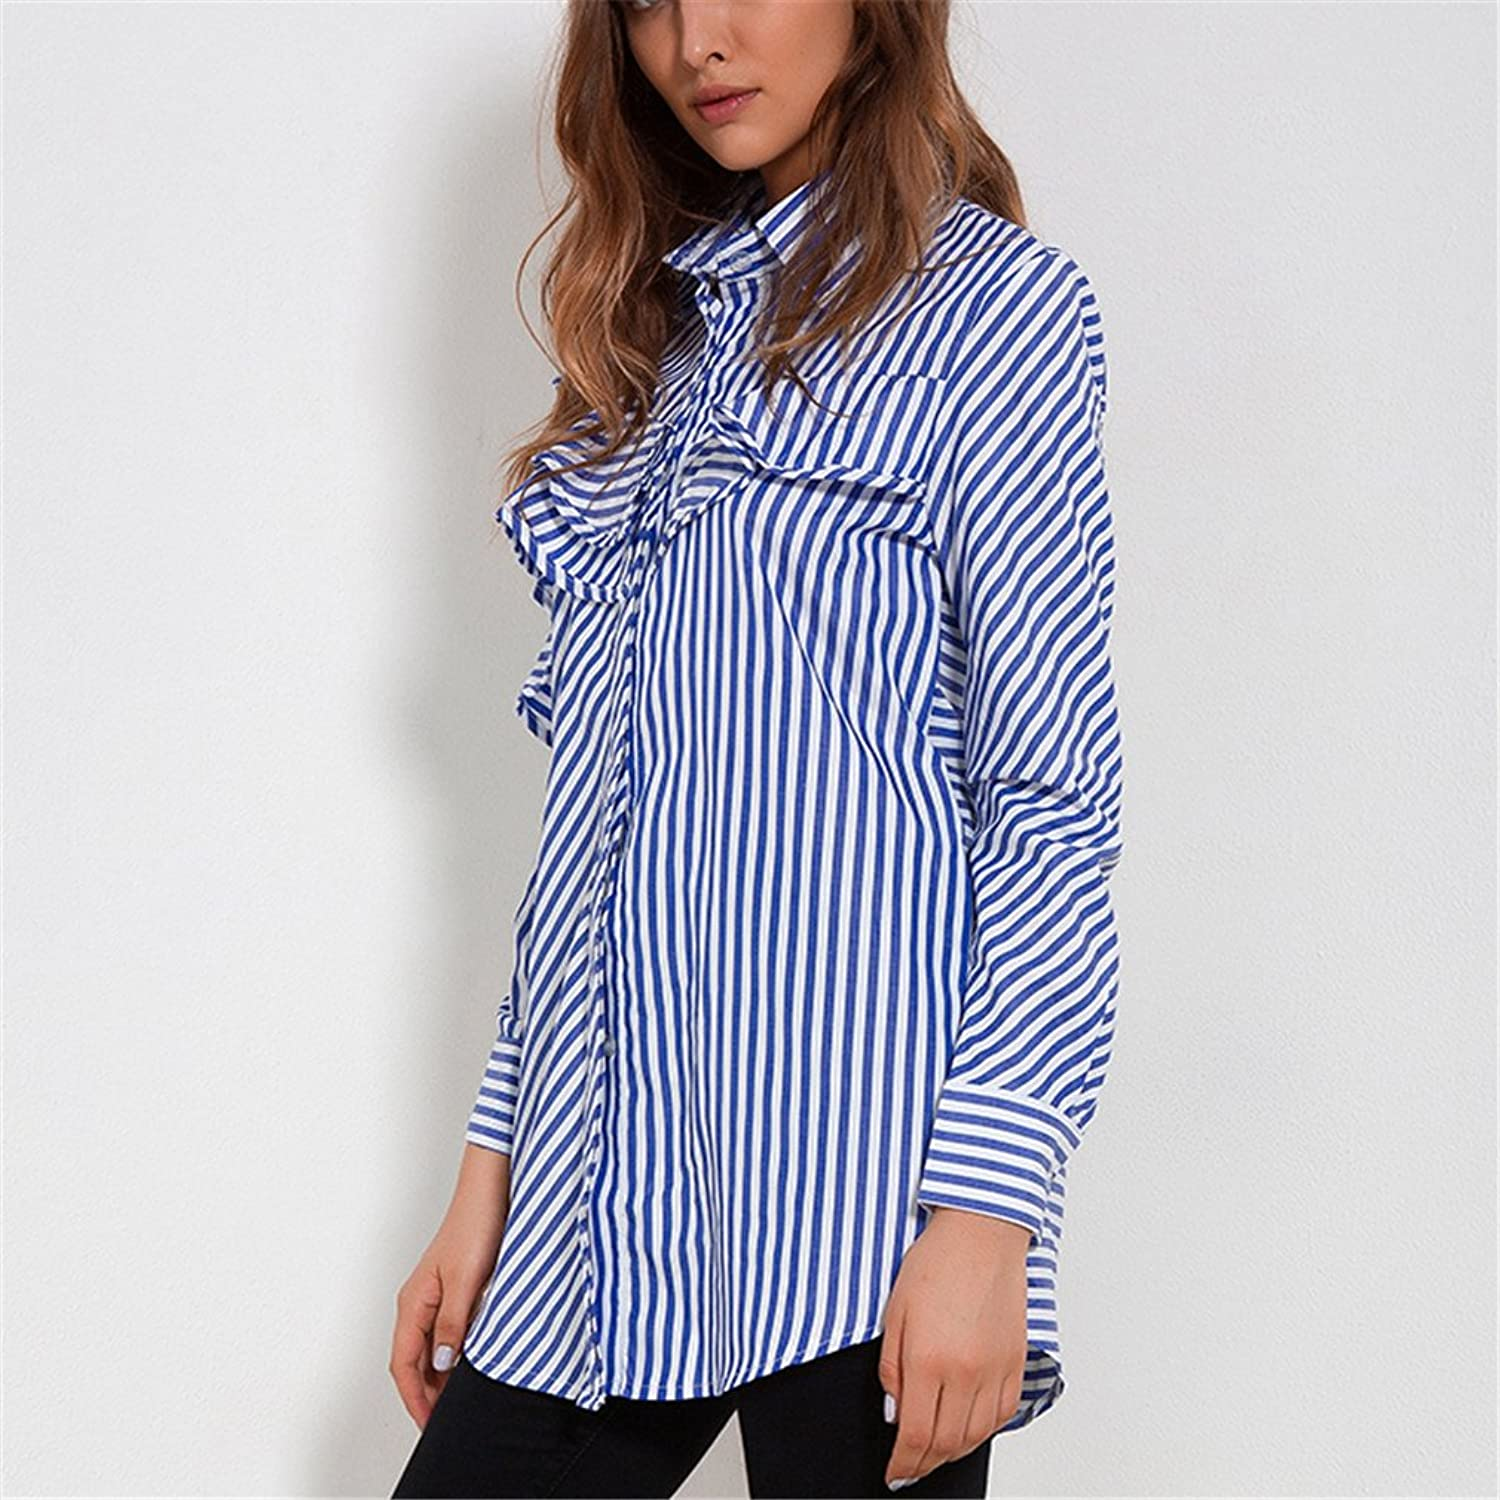 Taiziwei Women Tops Blouses Spring Blue and White Striped Shirt Long Sleeve Collar Ruffle Blouse Womens Clothing at Amazon Womens Clothing store: